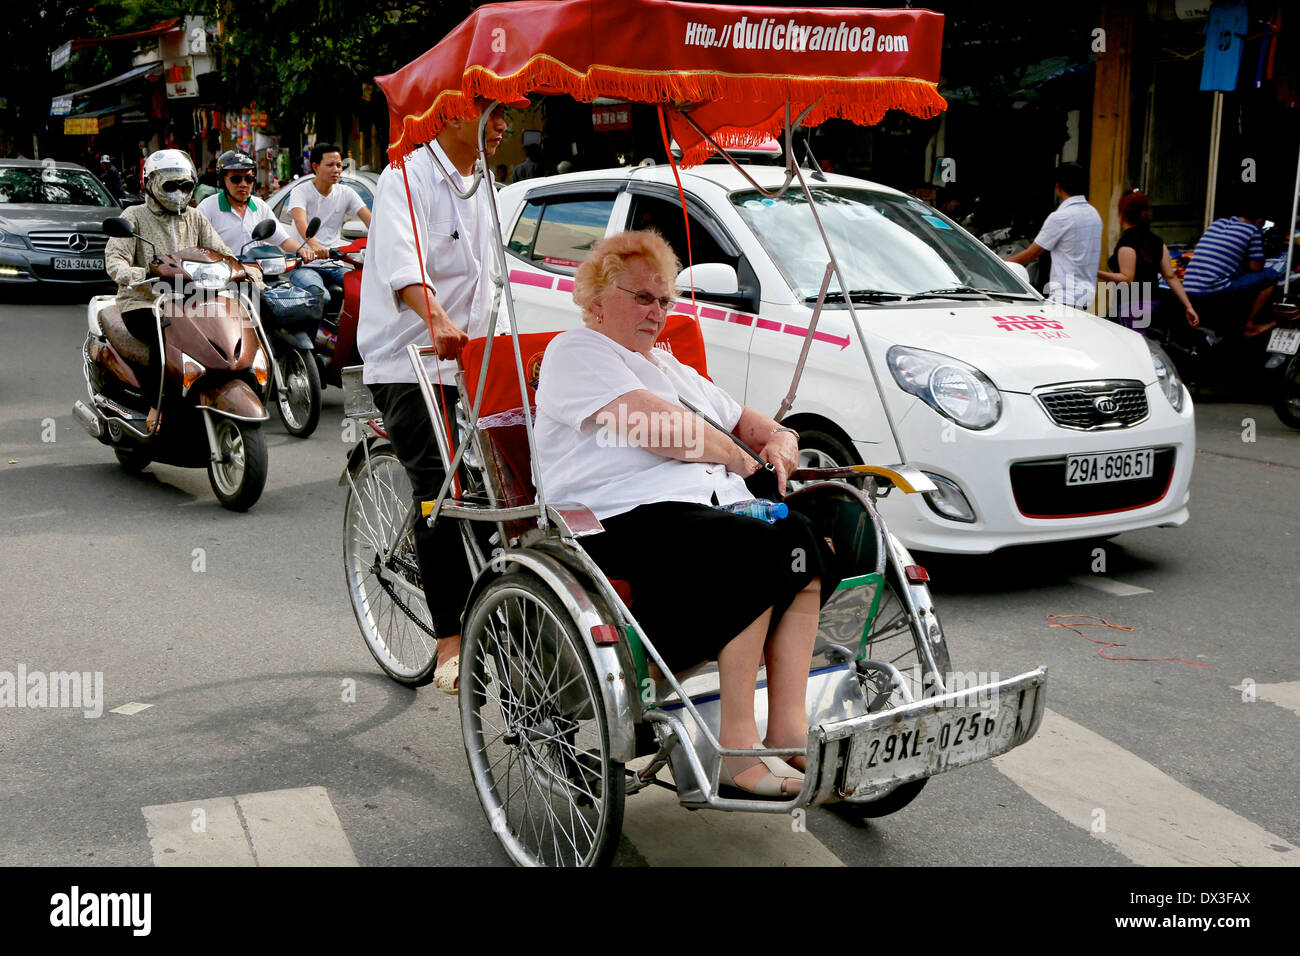 A woman tourist being given a tour of the old quarter on a cycle. Hanoi, Vietnam, Southeast Asia - Stock Image